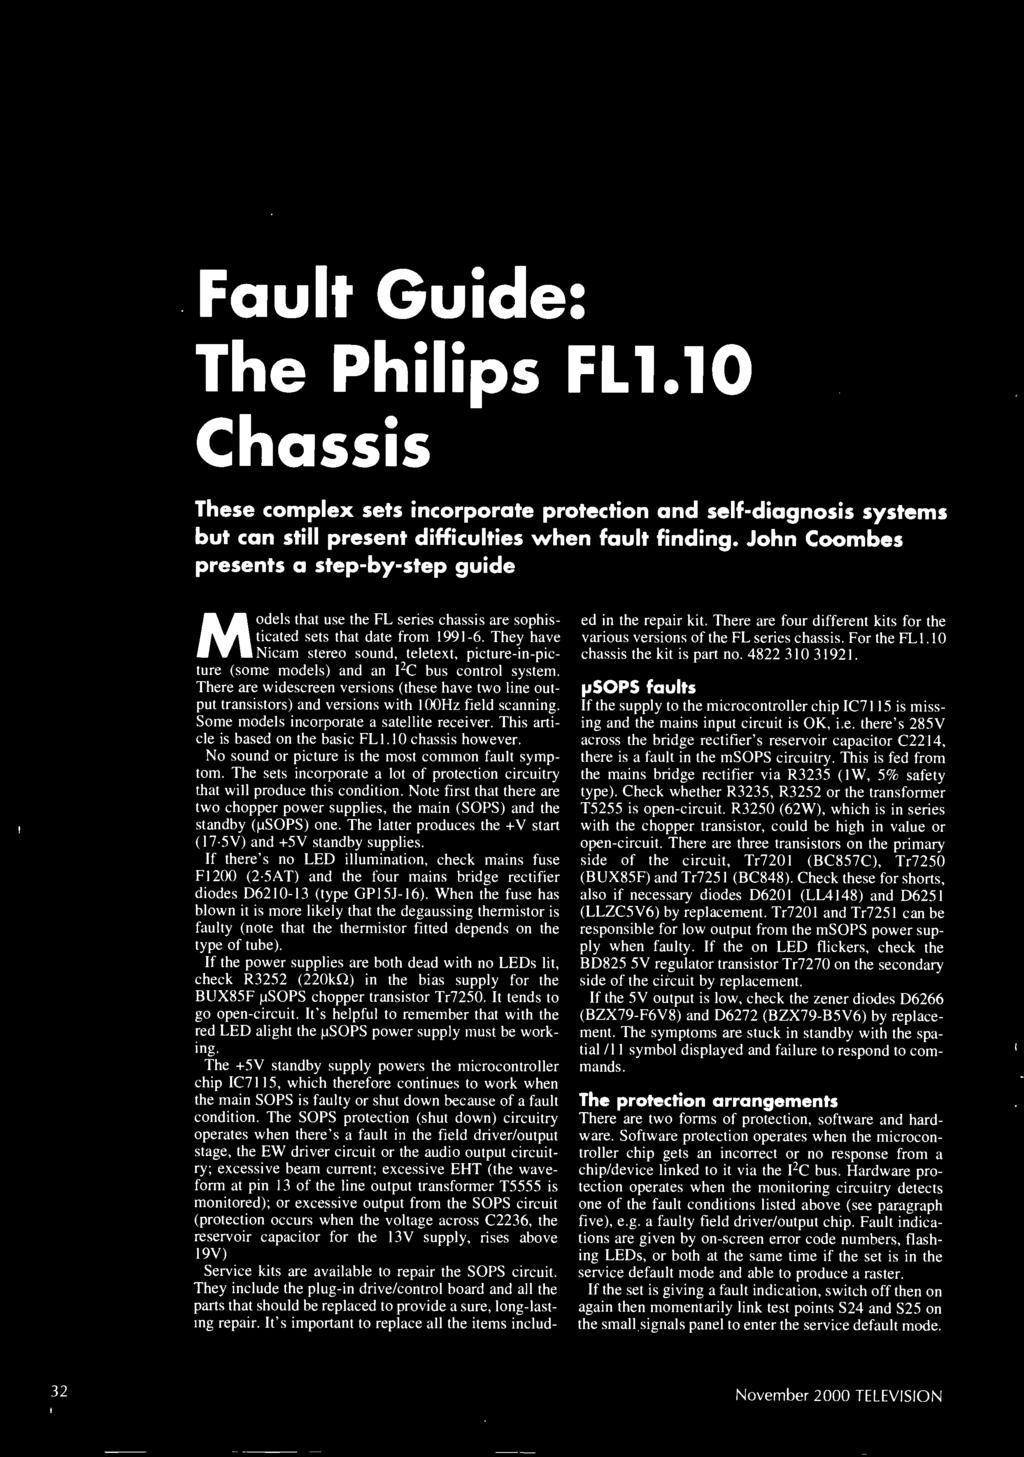 Fault Guide: The Philips FL1.10 Chassis These complex sets incorporate protection and self -diagnosis systems but can still present difficulties when fault finding.